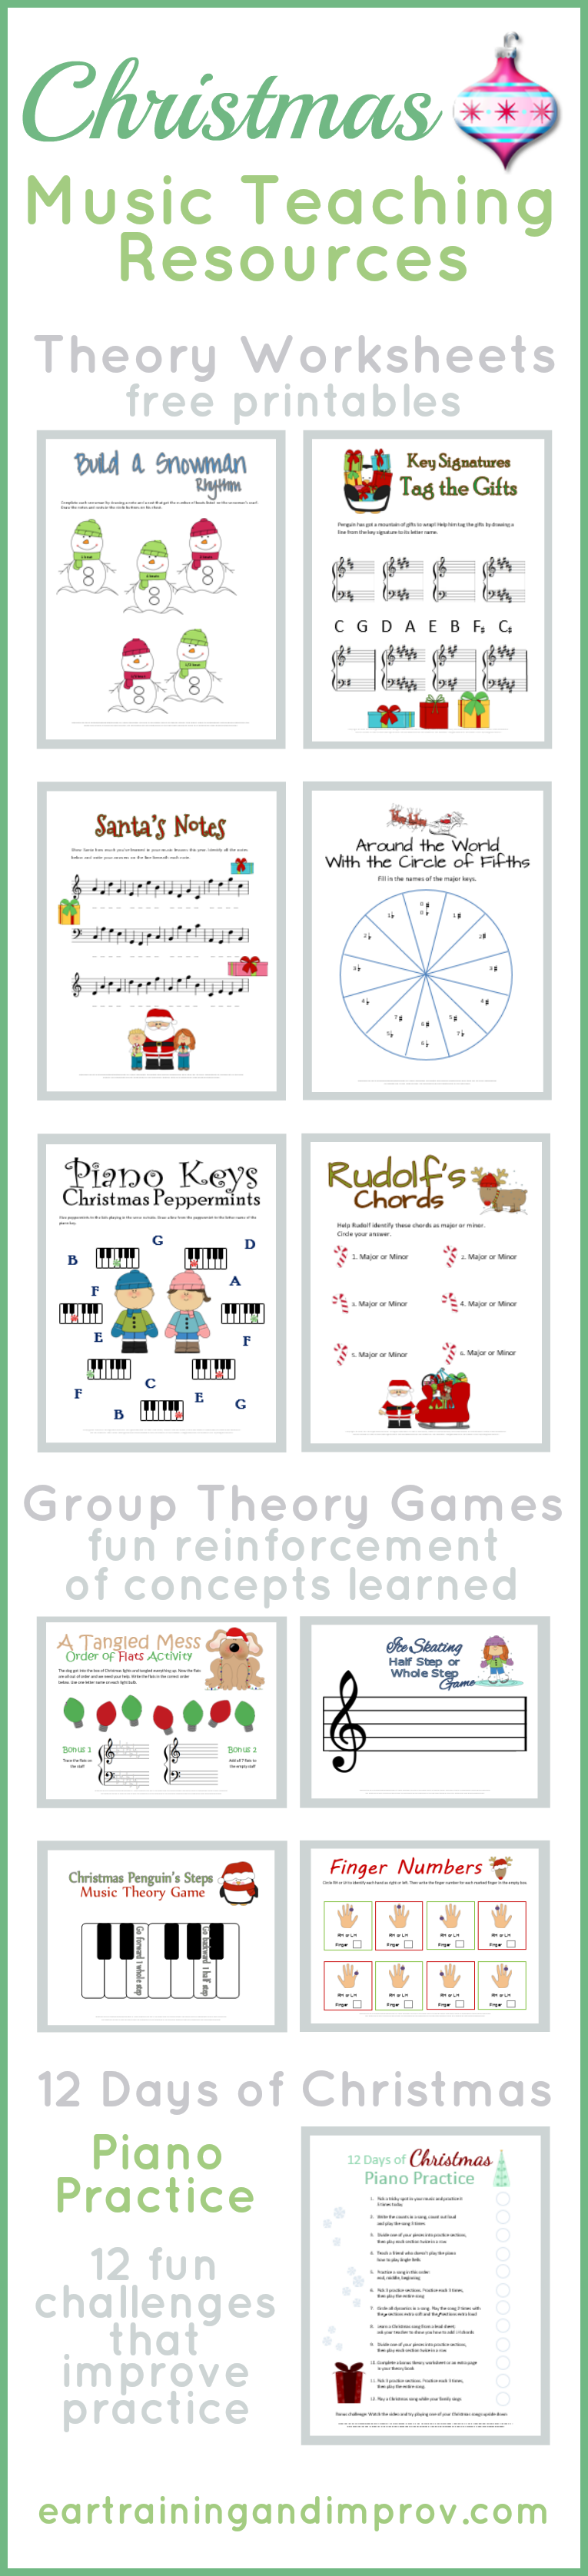 image relating to Printable Christmas Games With Answers known as Xmas Audio Basic principle Worksheets - 20+ Cost-free Printables